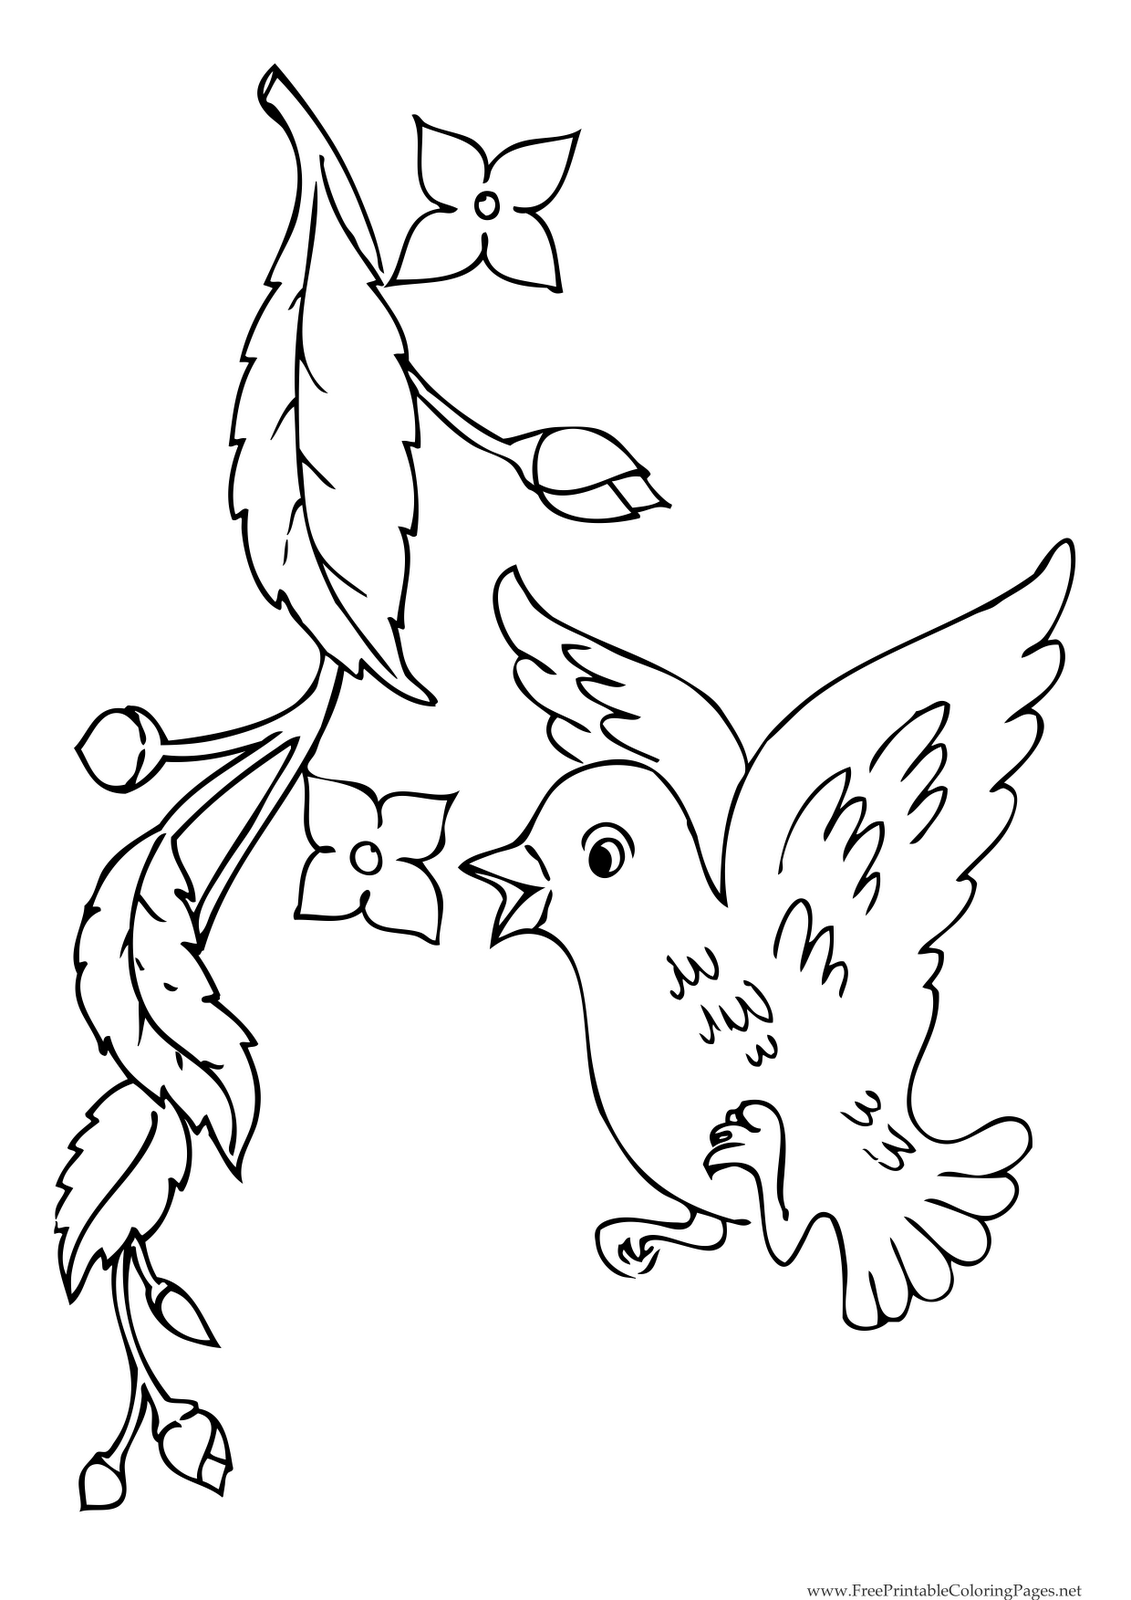 Coloring pages of flower buds - Spring Blossoms Coloring Pages Coloring Pages Of Parts Of A Bird